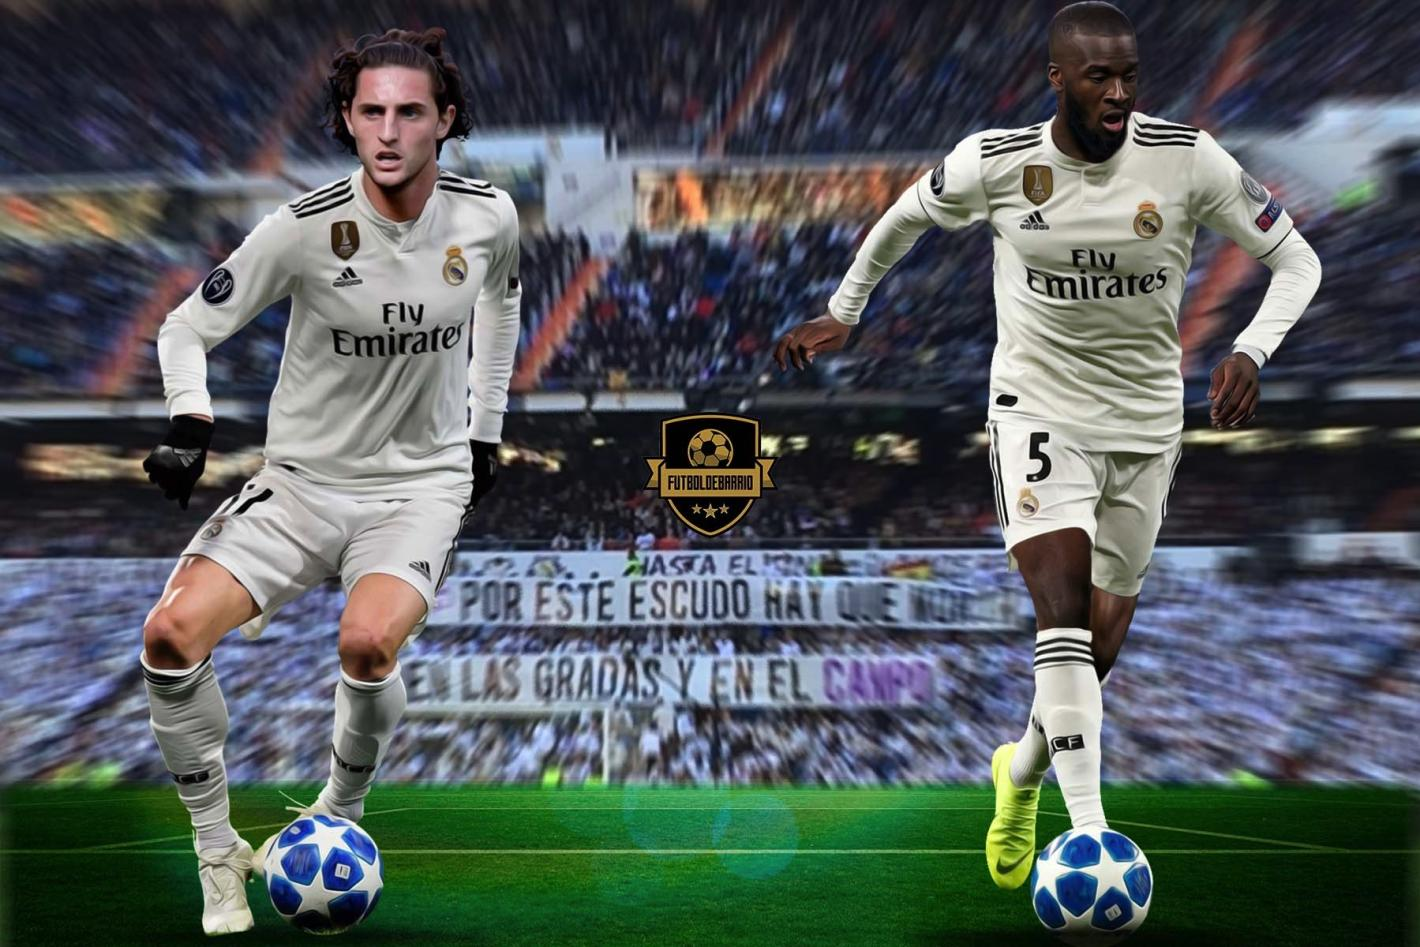 Tanguy Ndombele & Adrien Rabiot to Real Madrid